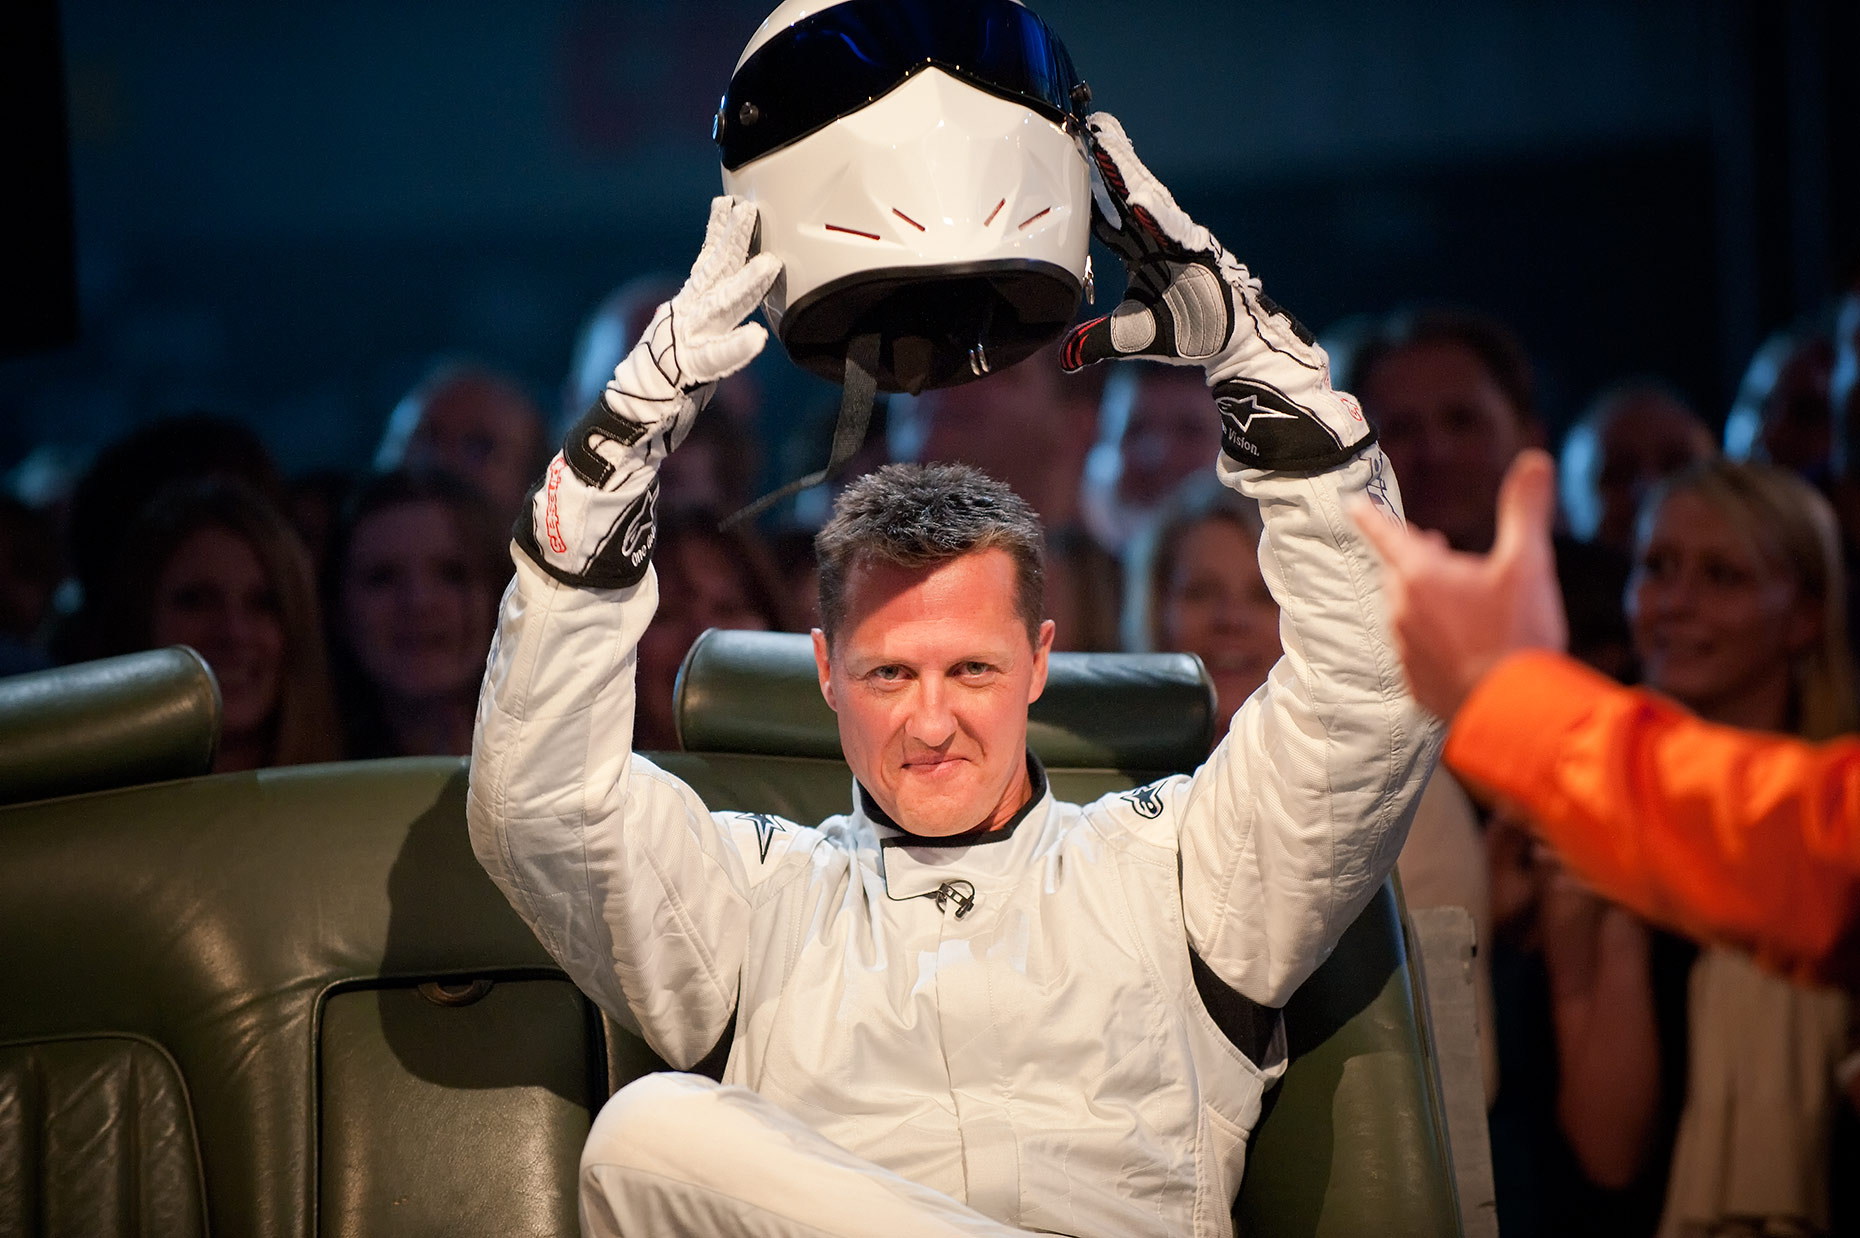 The Stig V Michael Schumacher